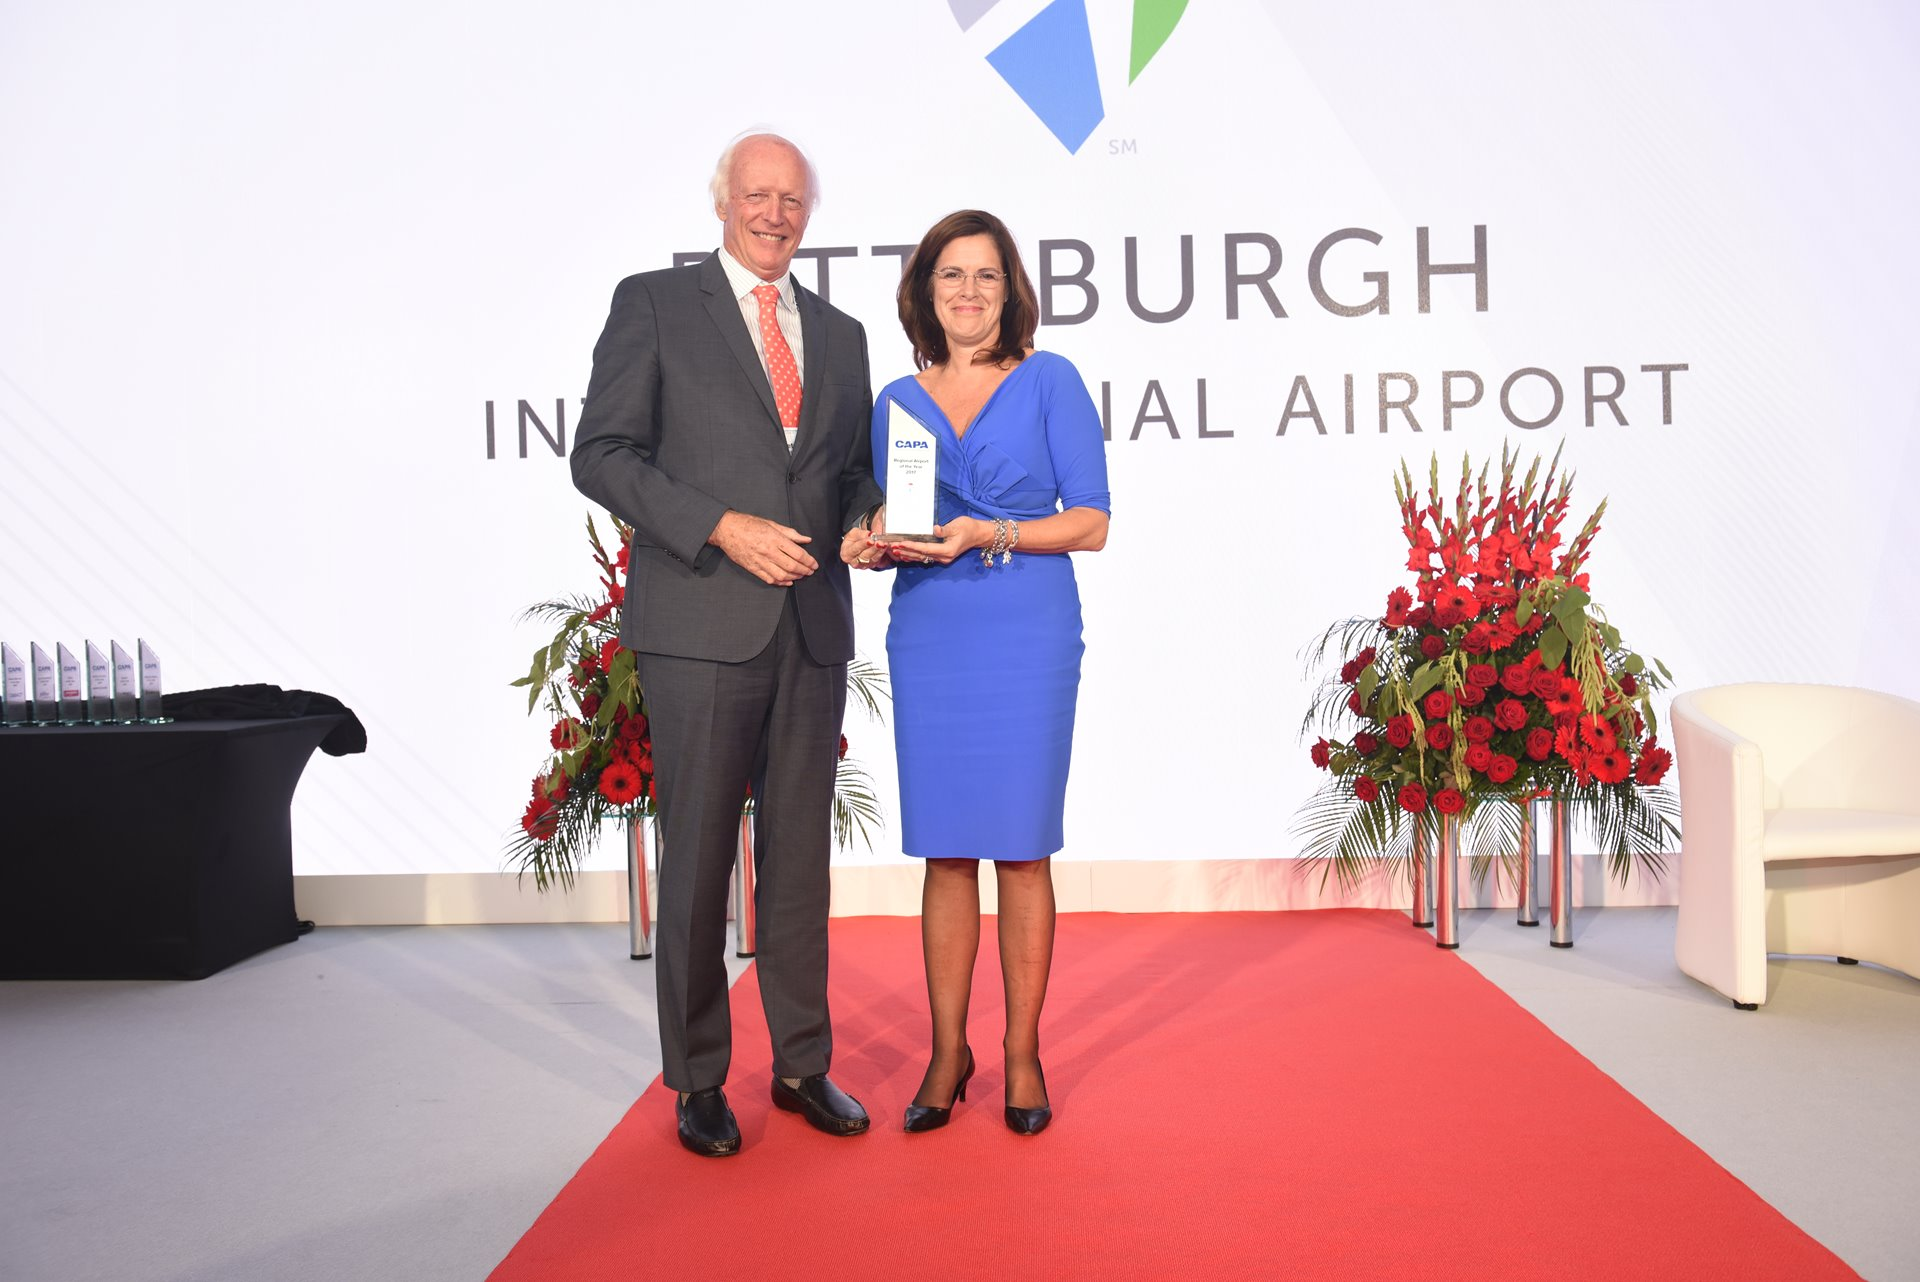 PITTSBURGH INTERNATIONAL NAMED 2017 CAPA REGIONAL AIRPORT OF THE YEAR